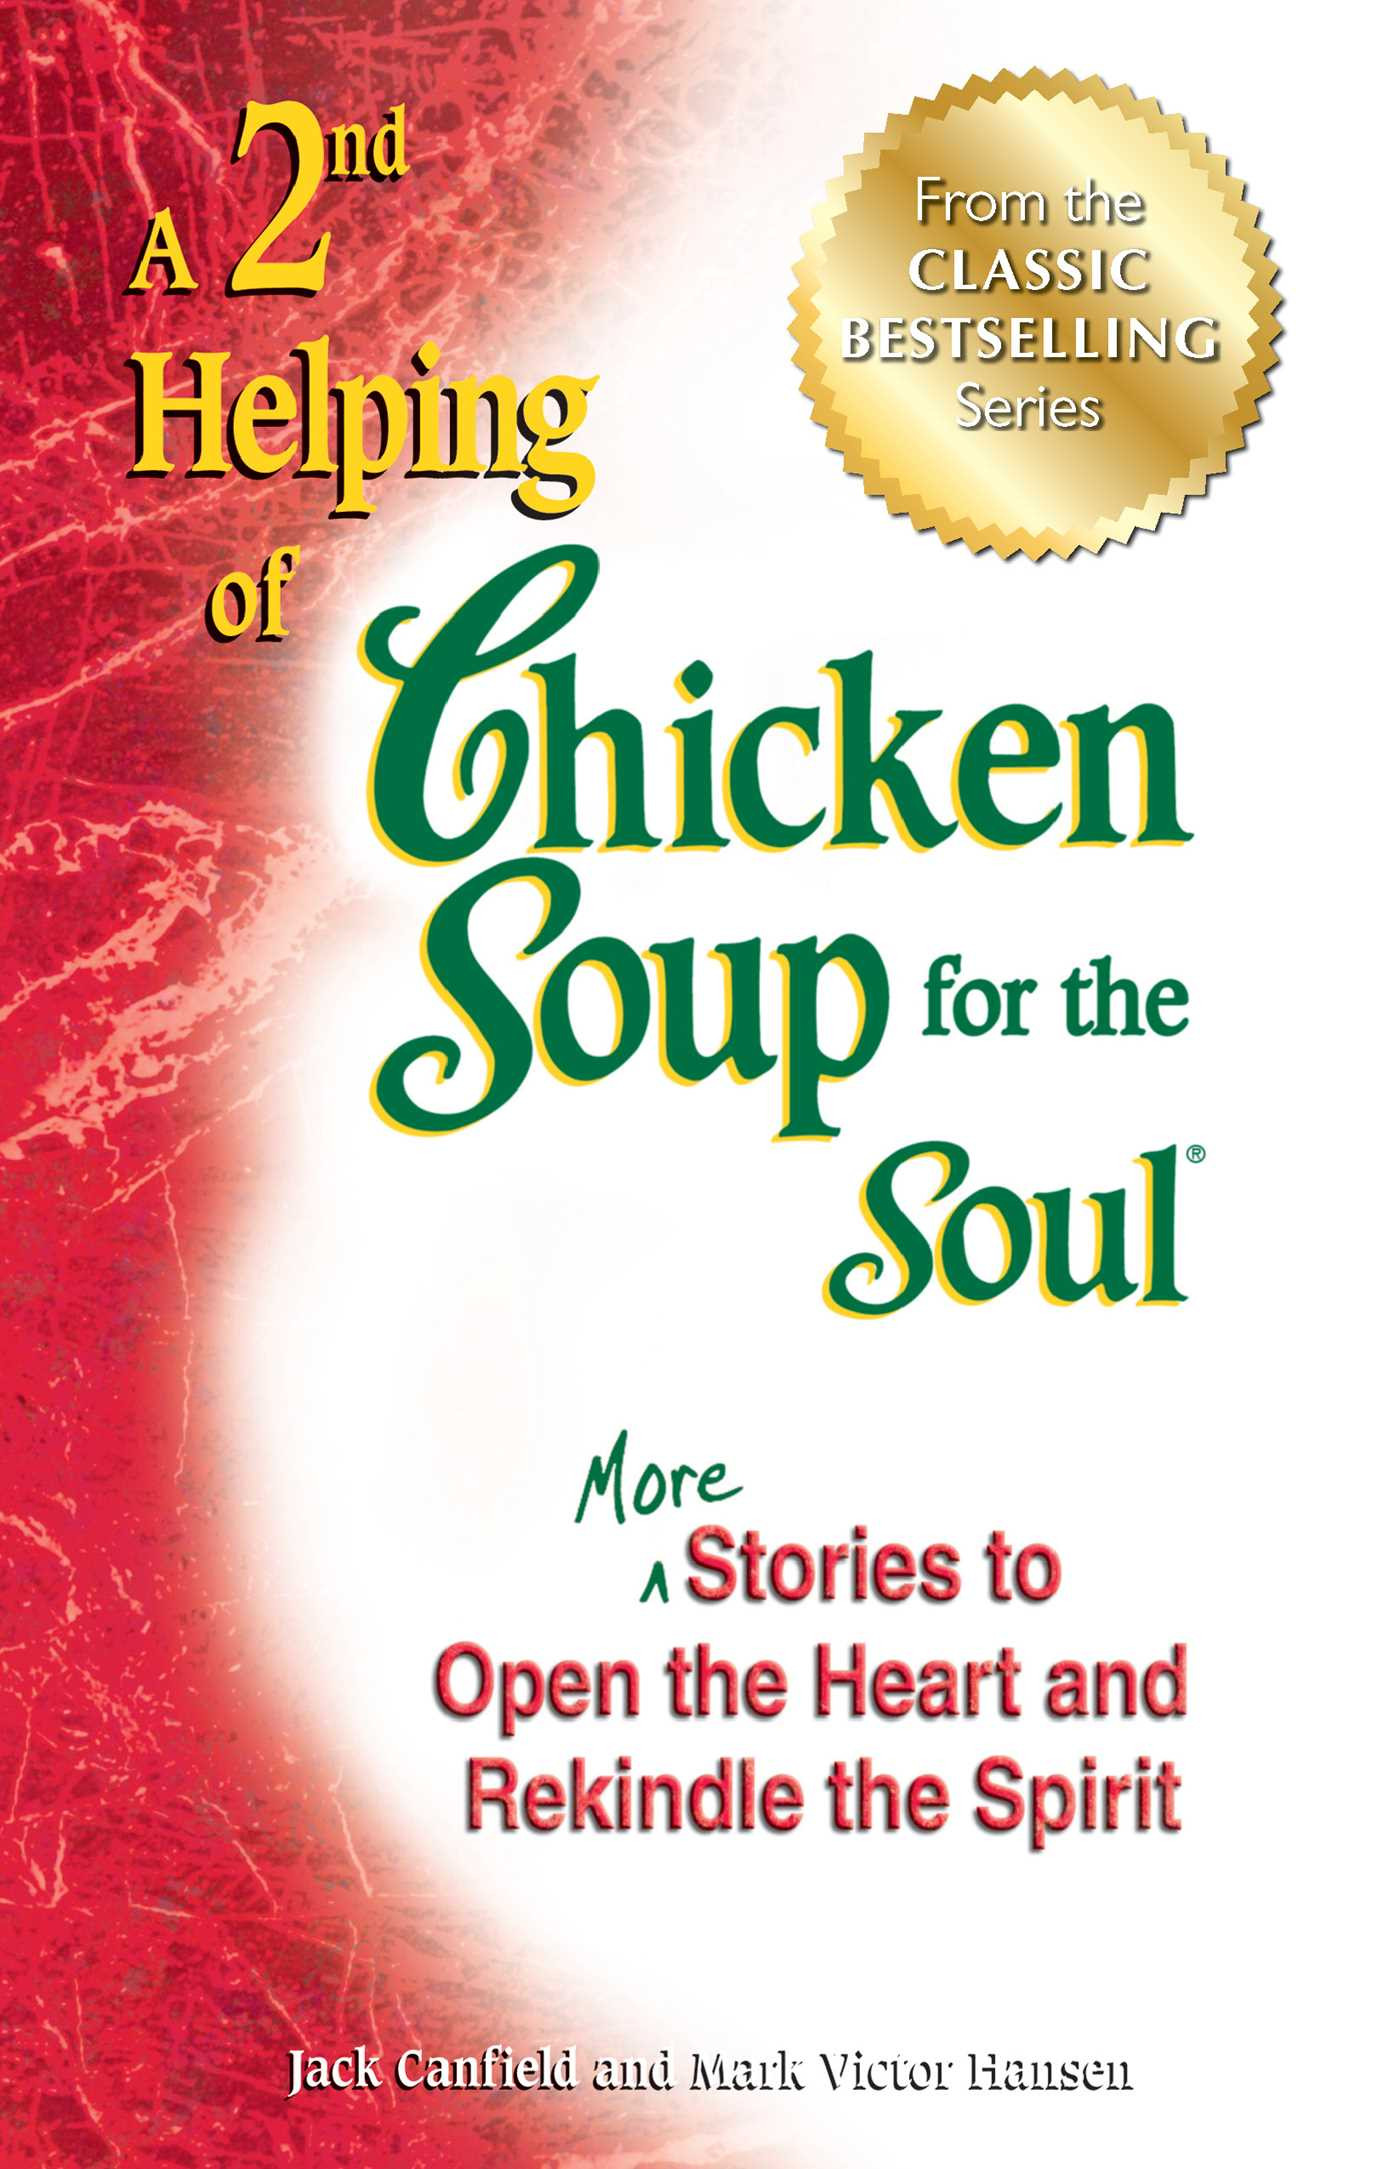 Chicken Soup For The Soul  A 2nd Helping of Chicken Soup for the Soul